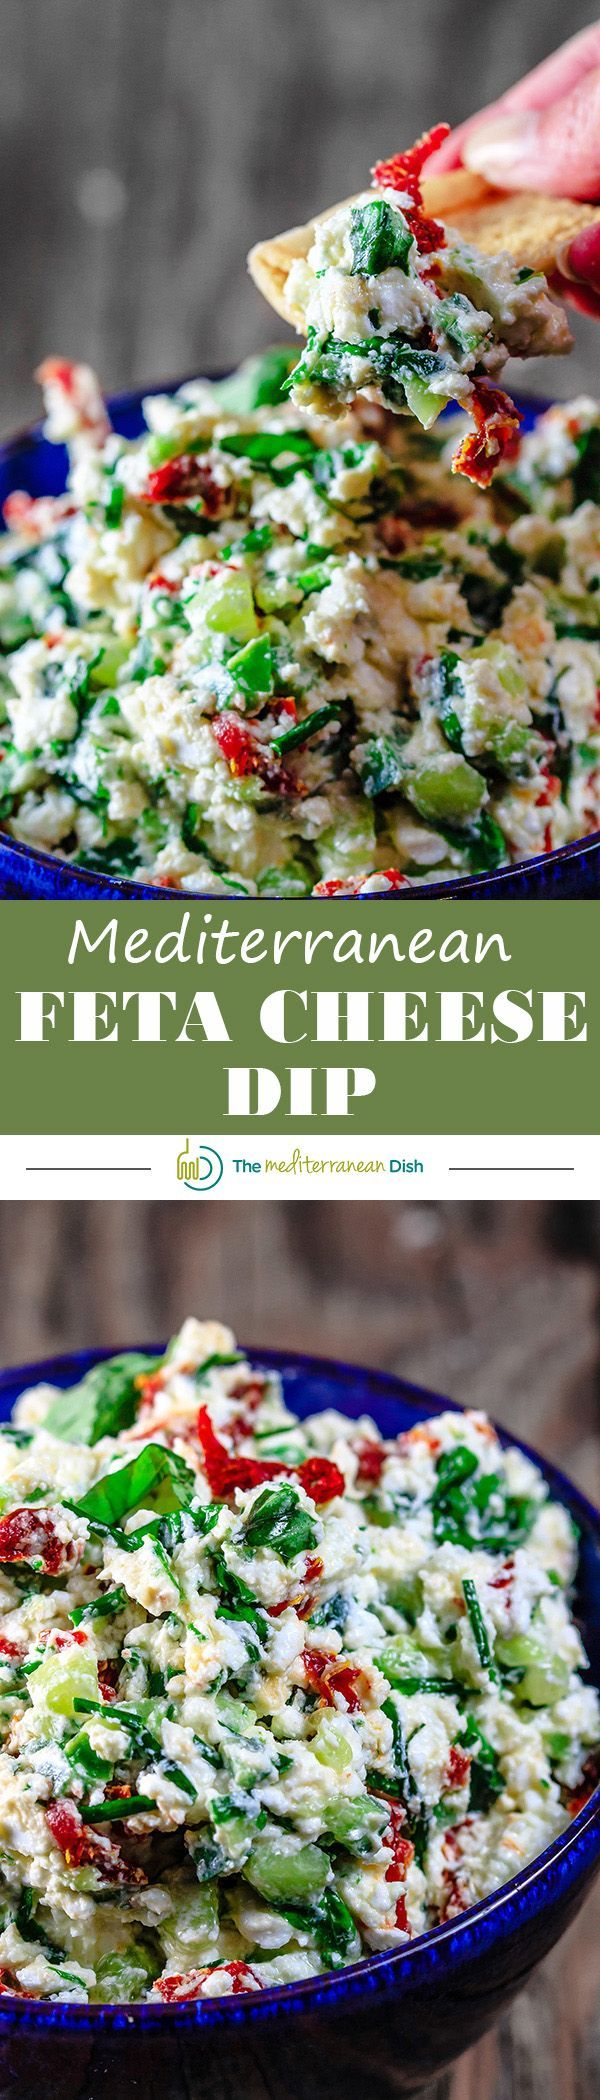 Mediterranean Feta Cheese Dip // crowd pleasing, 5-minute prep, super yummy